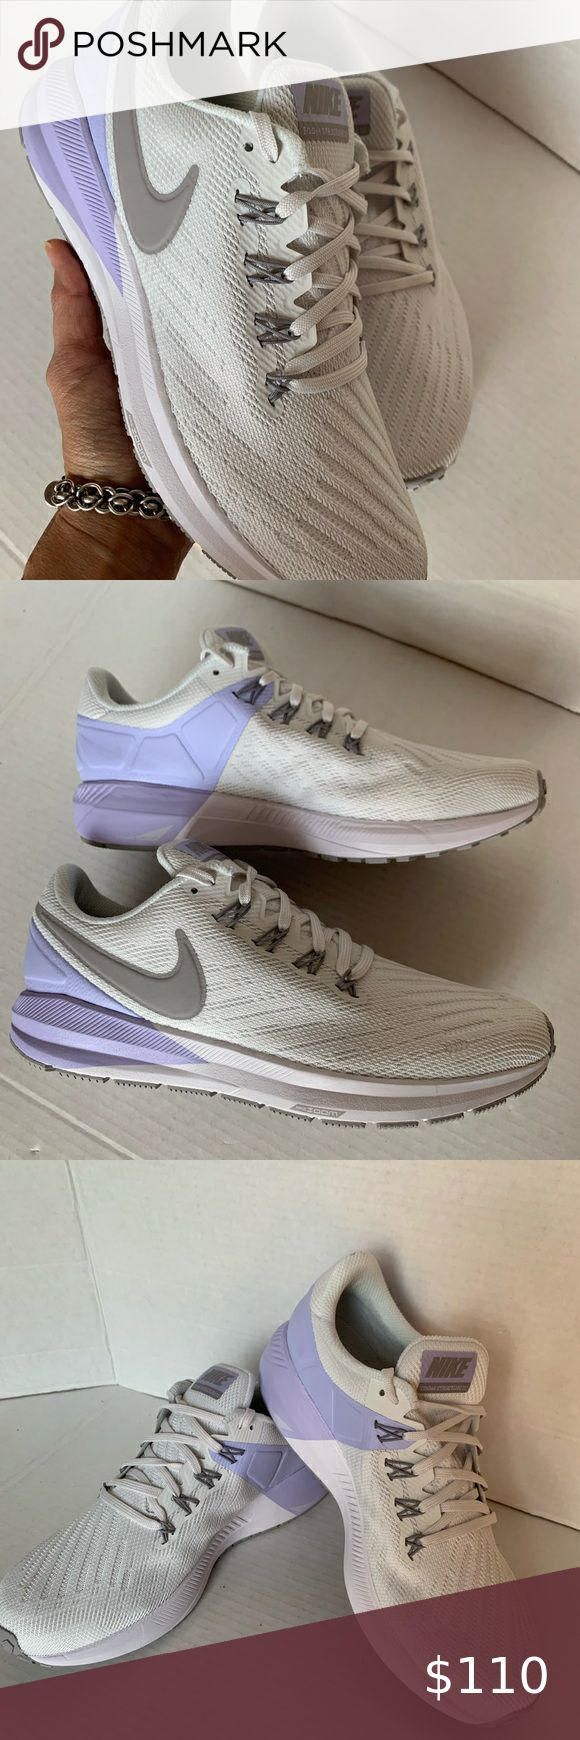 Nike Air Zoom Structure 22 Women's Sz 10 in 2020 Nike